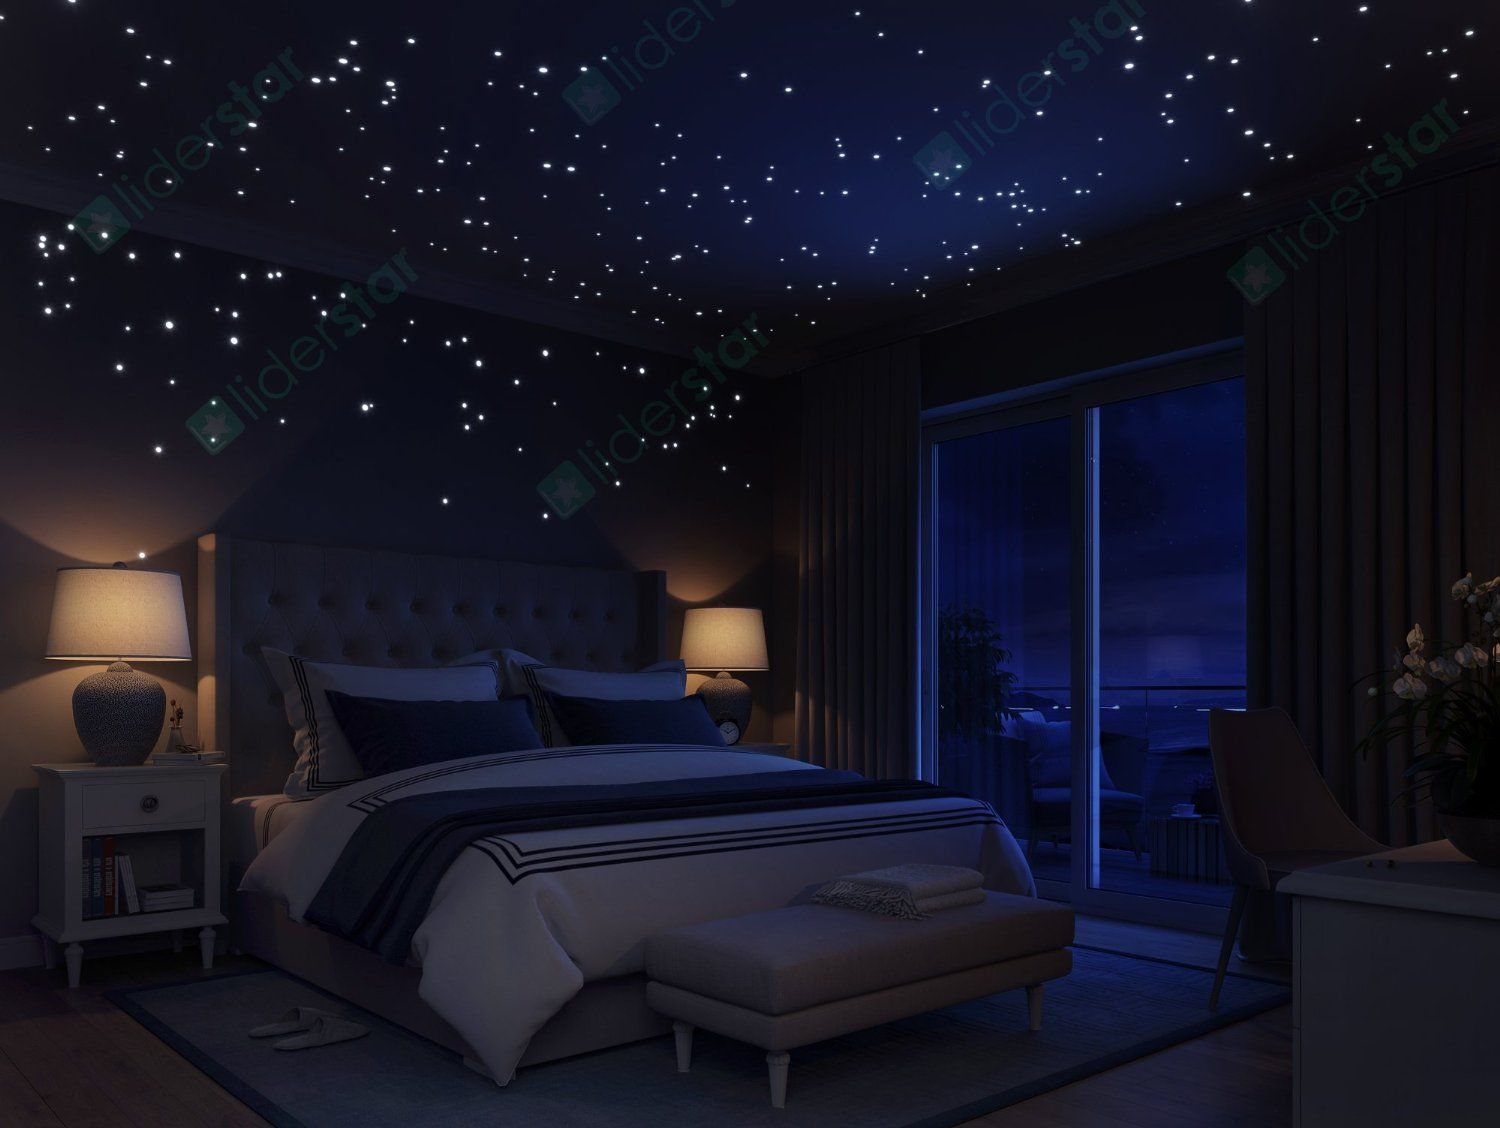 Boys Room Night Light Glow In The Dark Stars Wall Stickers 252 Dots And Moon